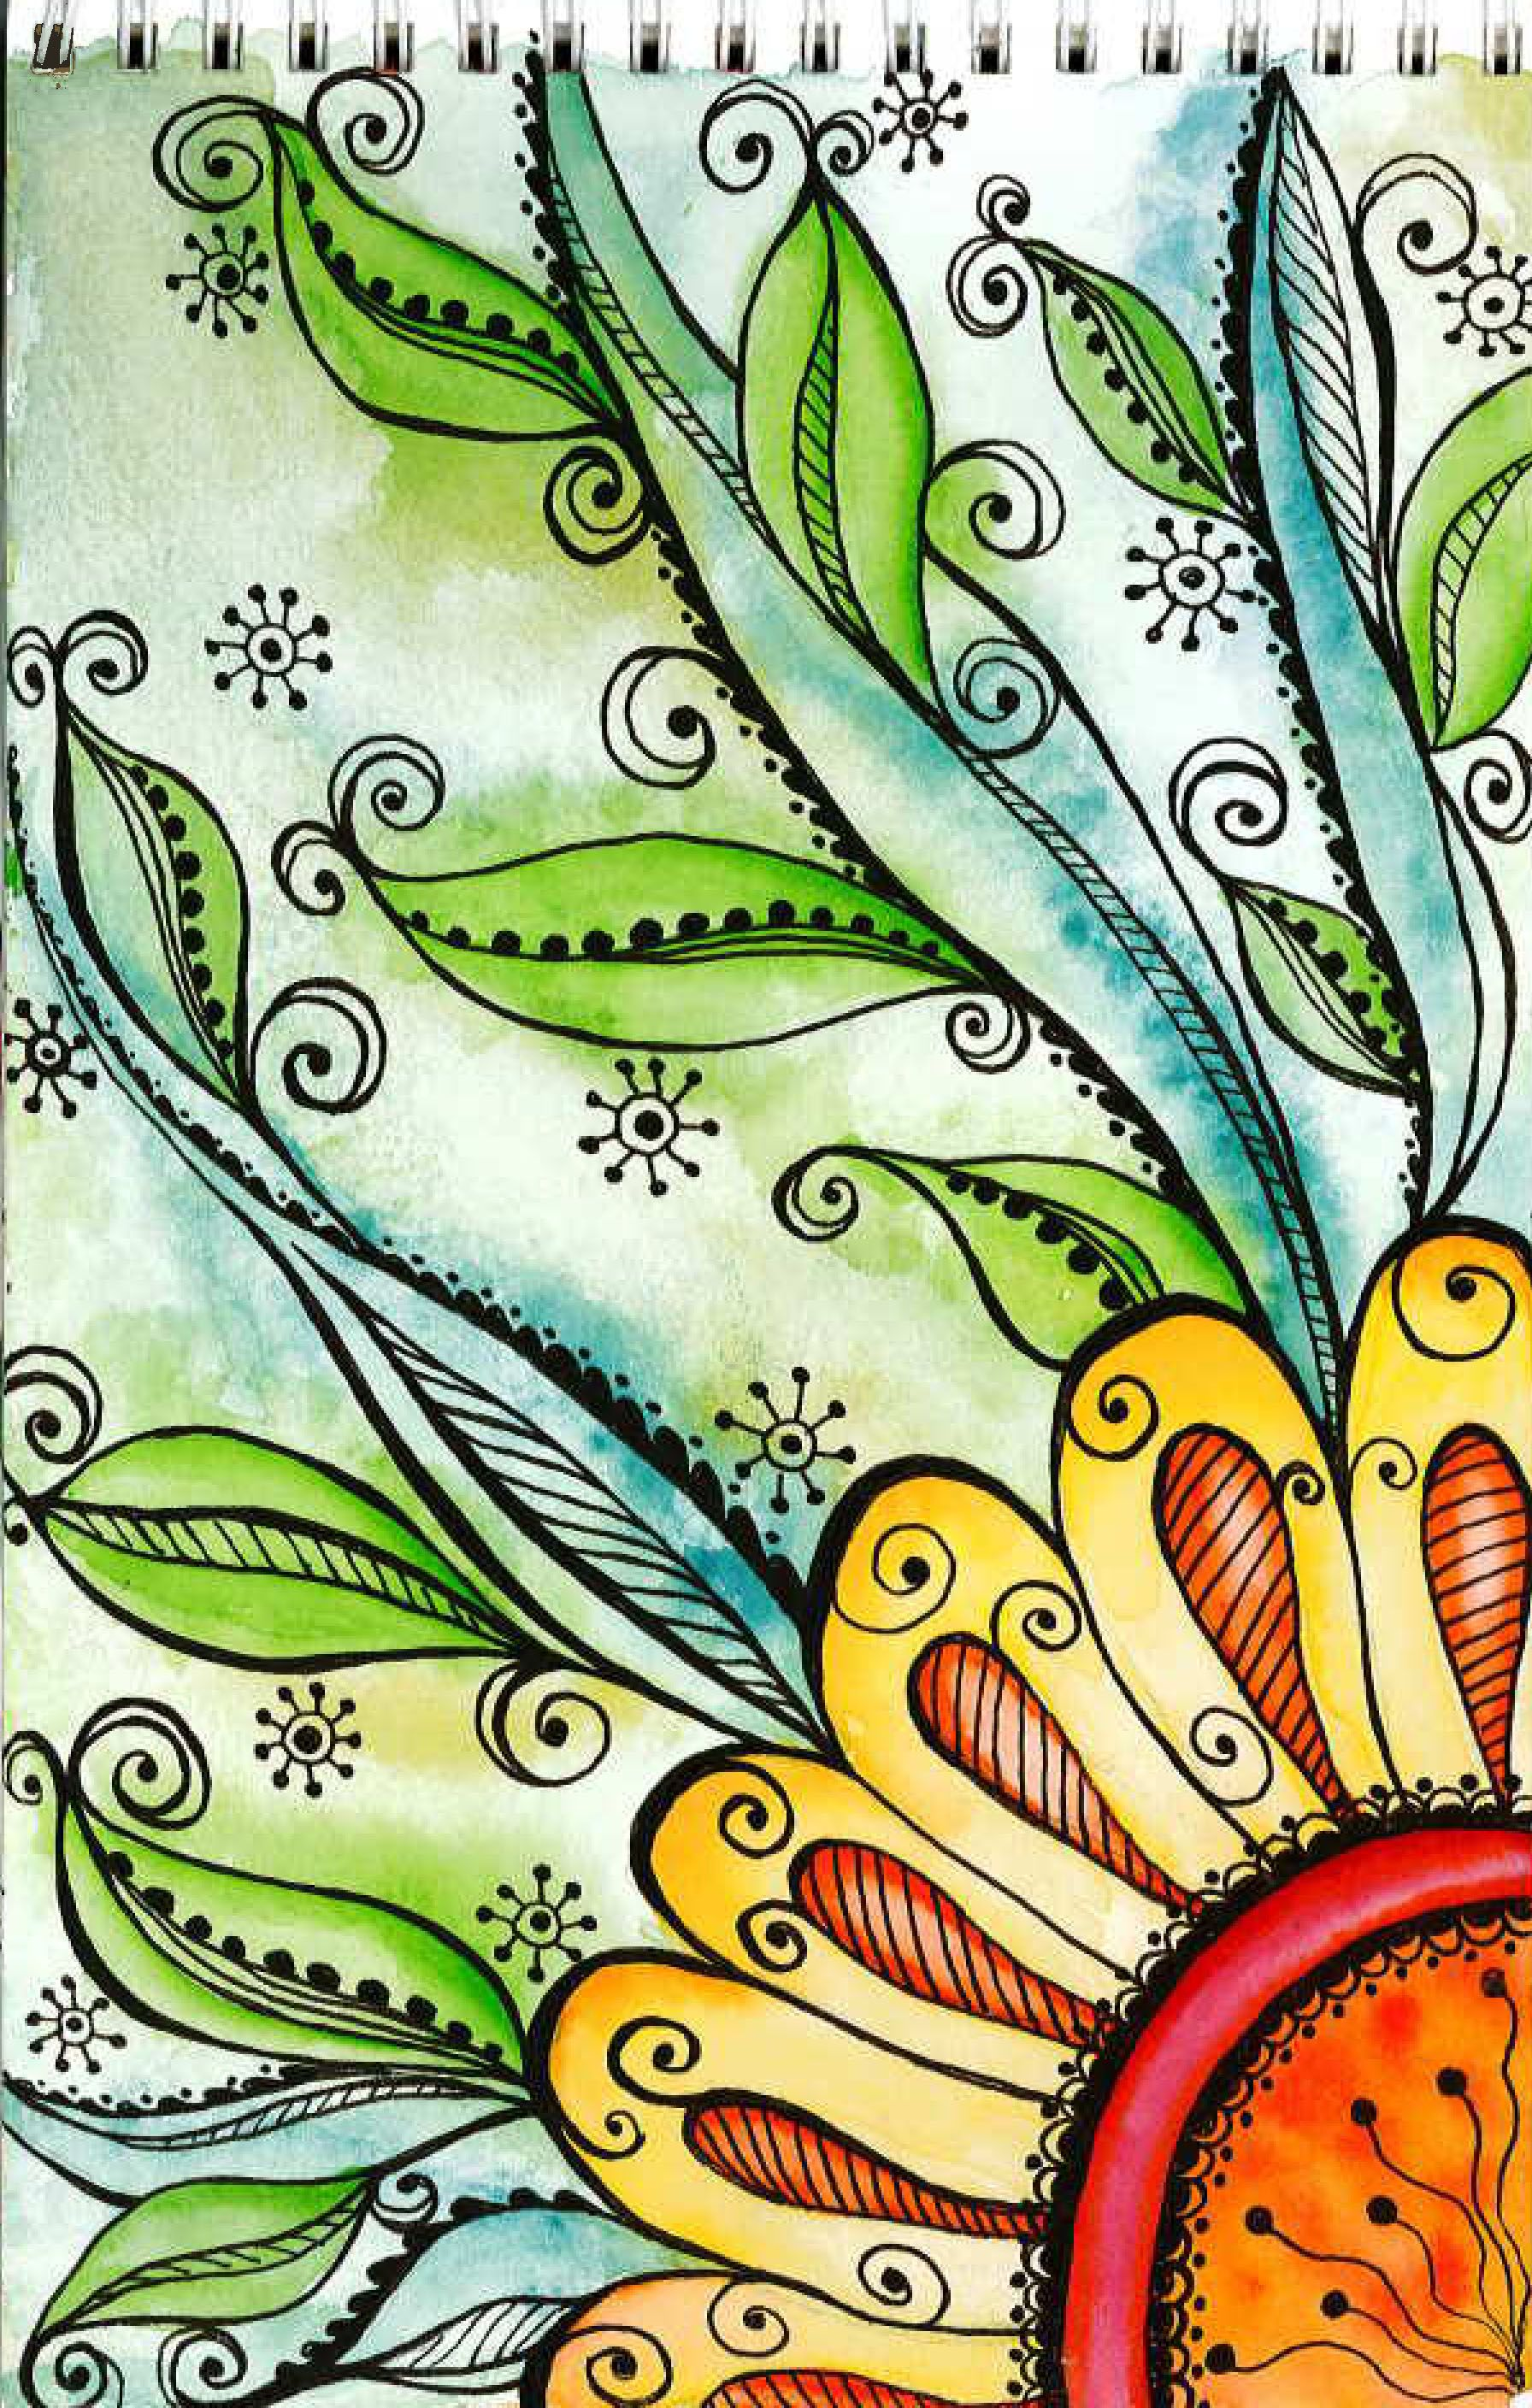 Color and art - Sharpie Doodle Filled With Water Color And More Sharpie Doodle Embellishments Zentangle Style